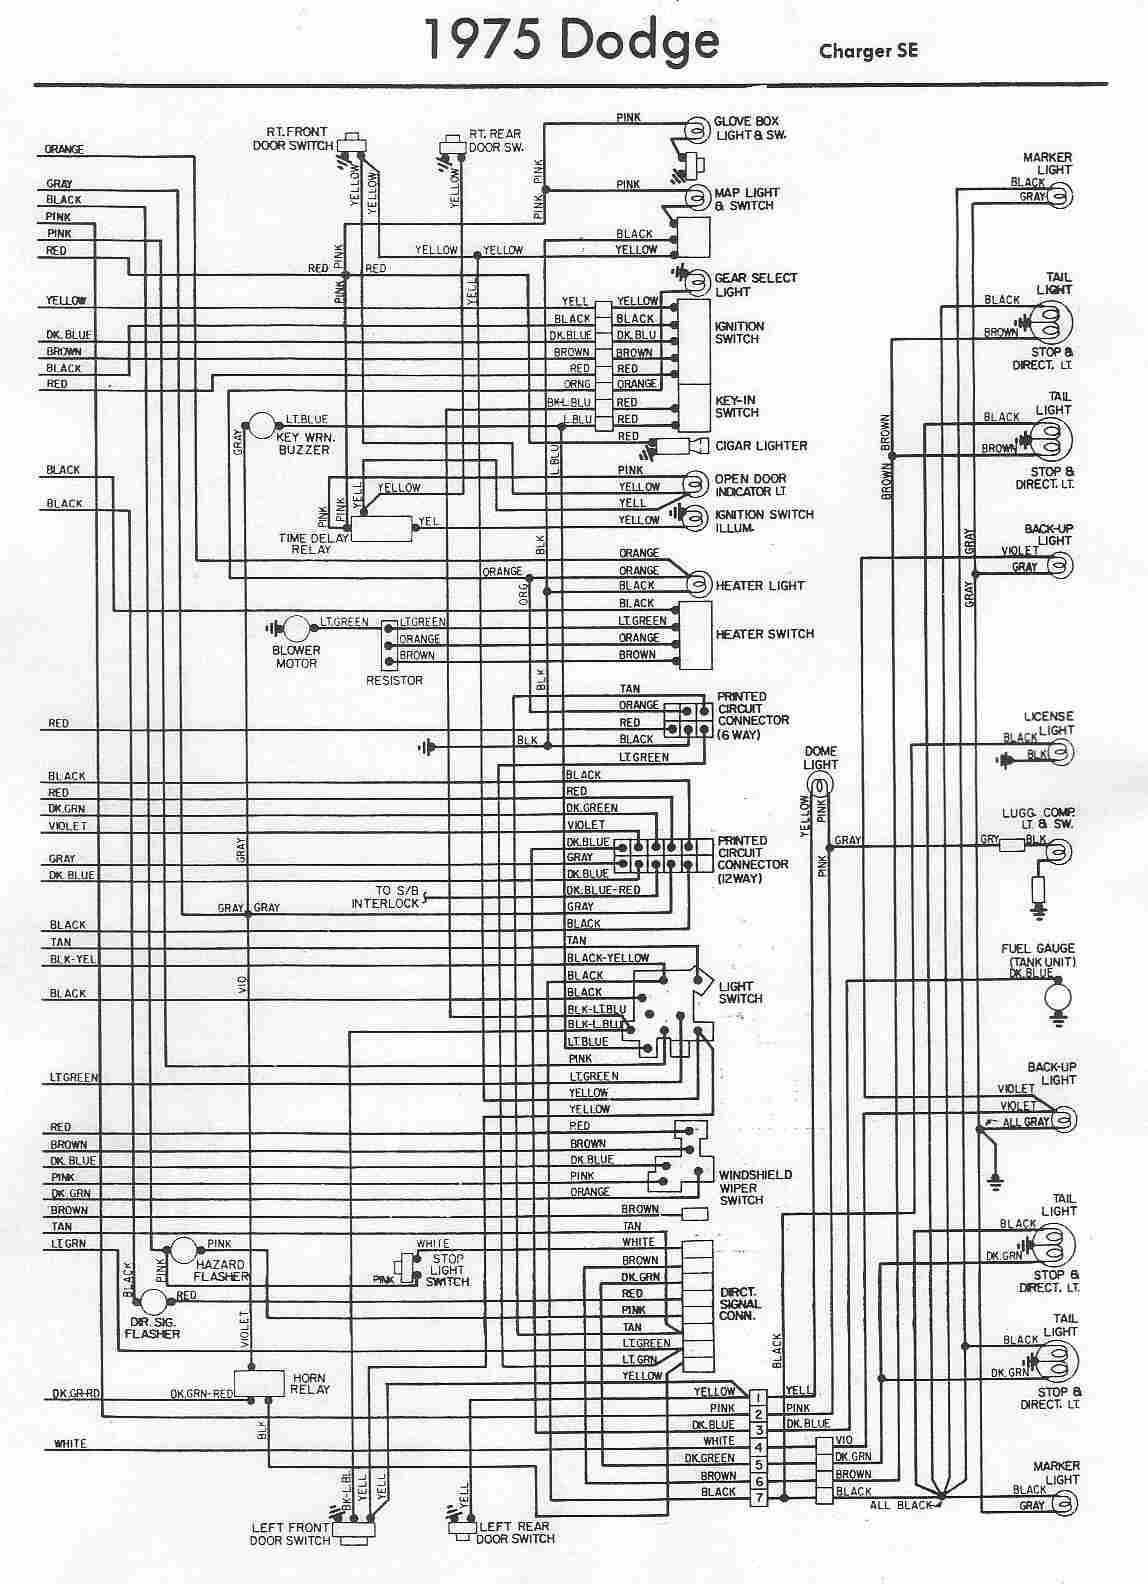 Dodge Car Manuals Wiring Diagrams Pdf Fault Codes 1996 Nissan Pickup Diagram Free Download